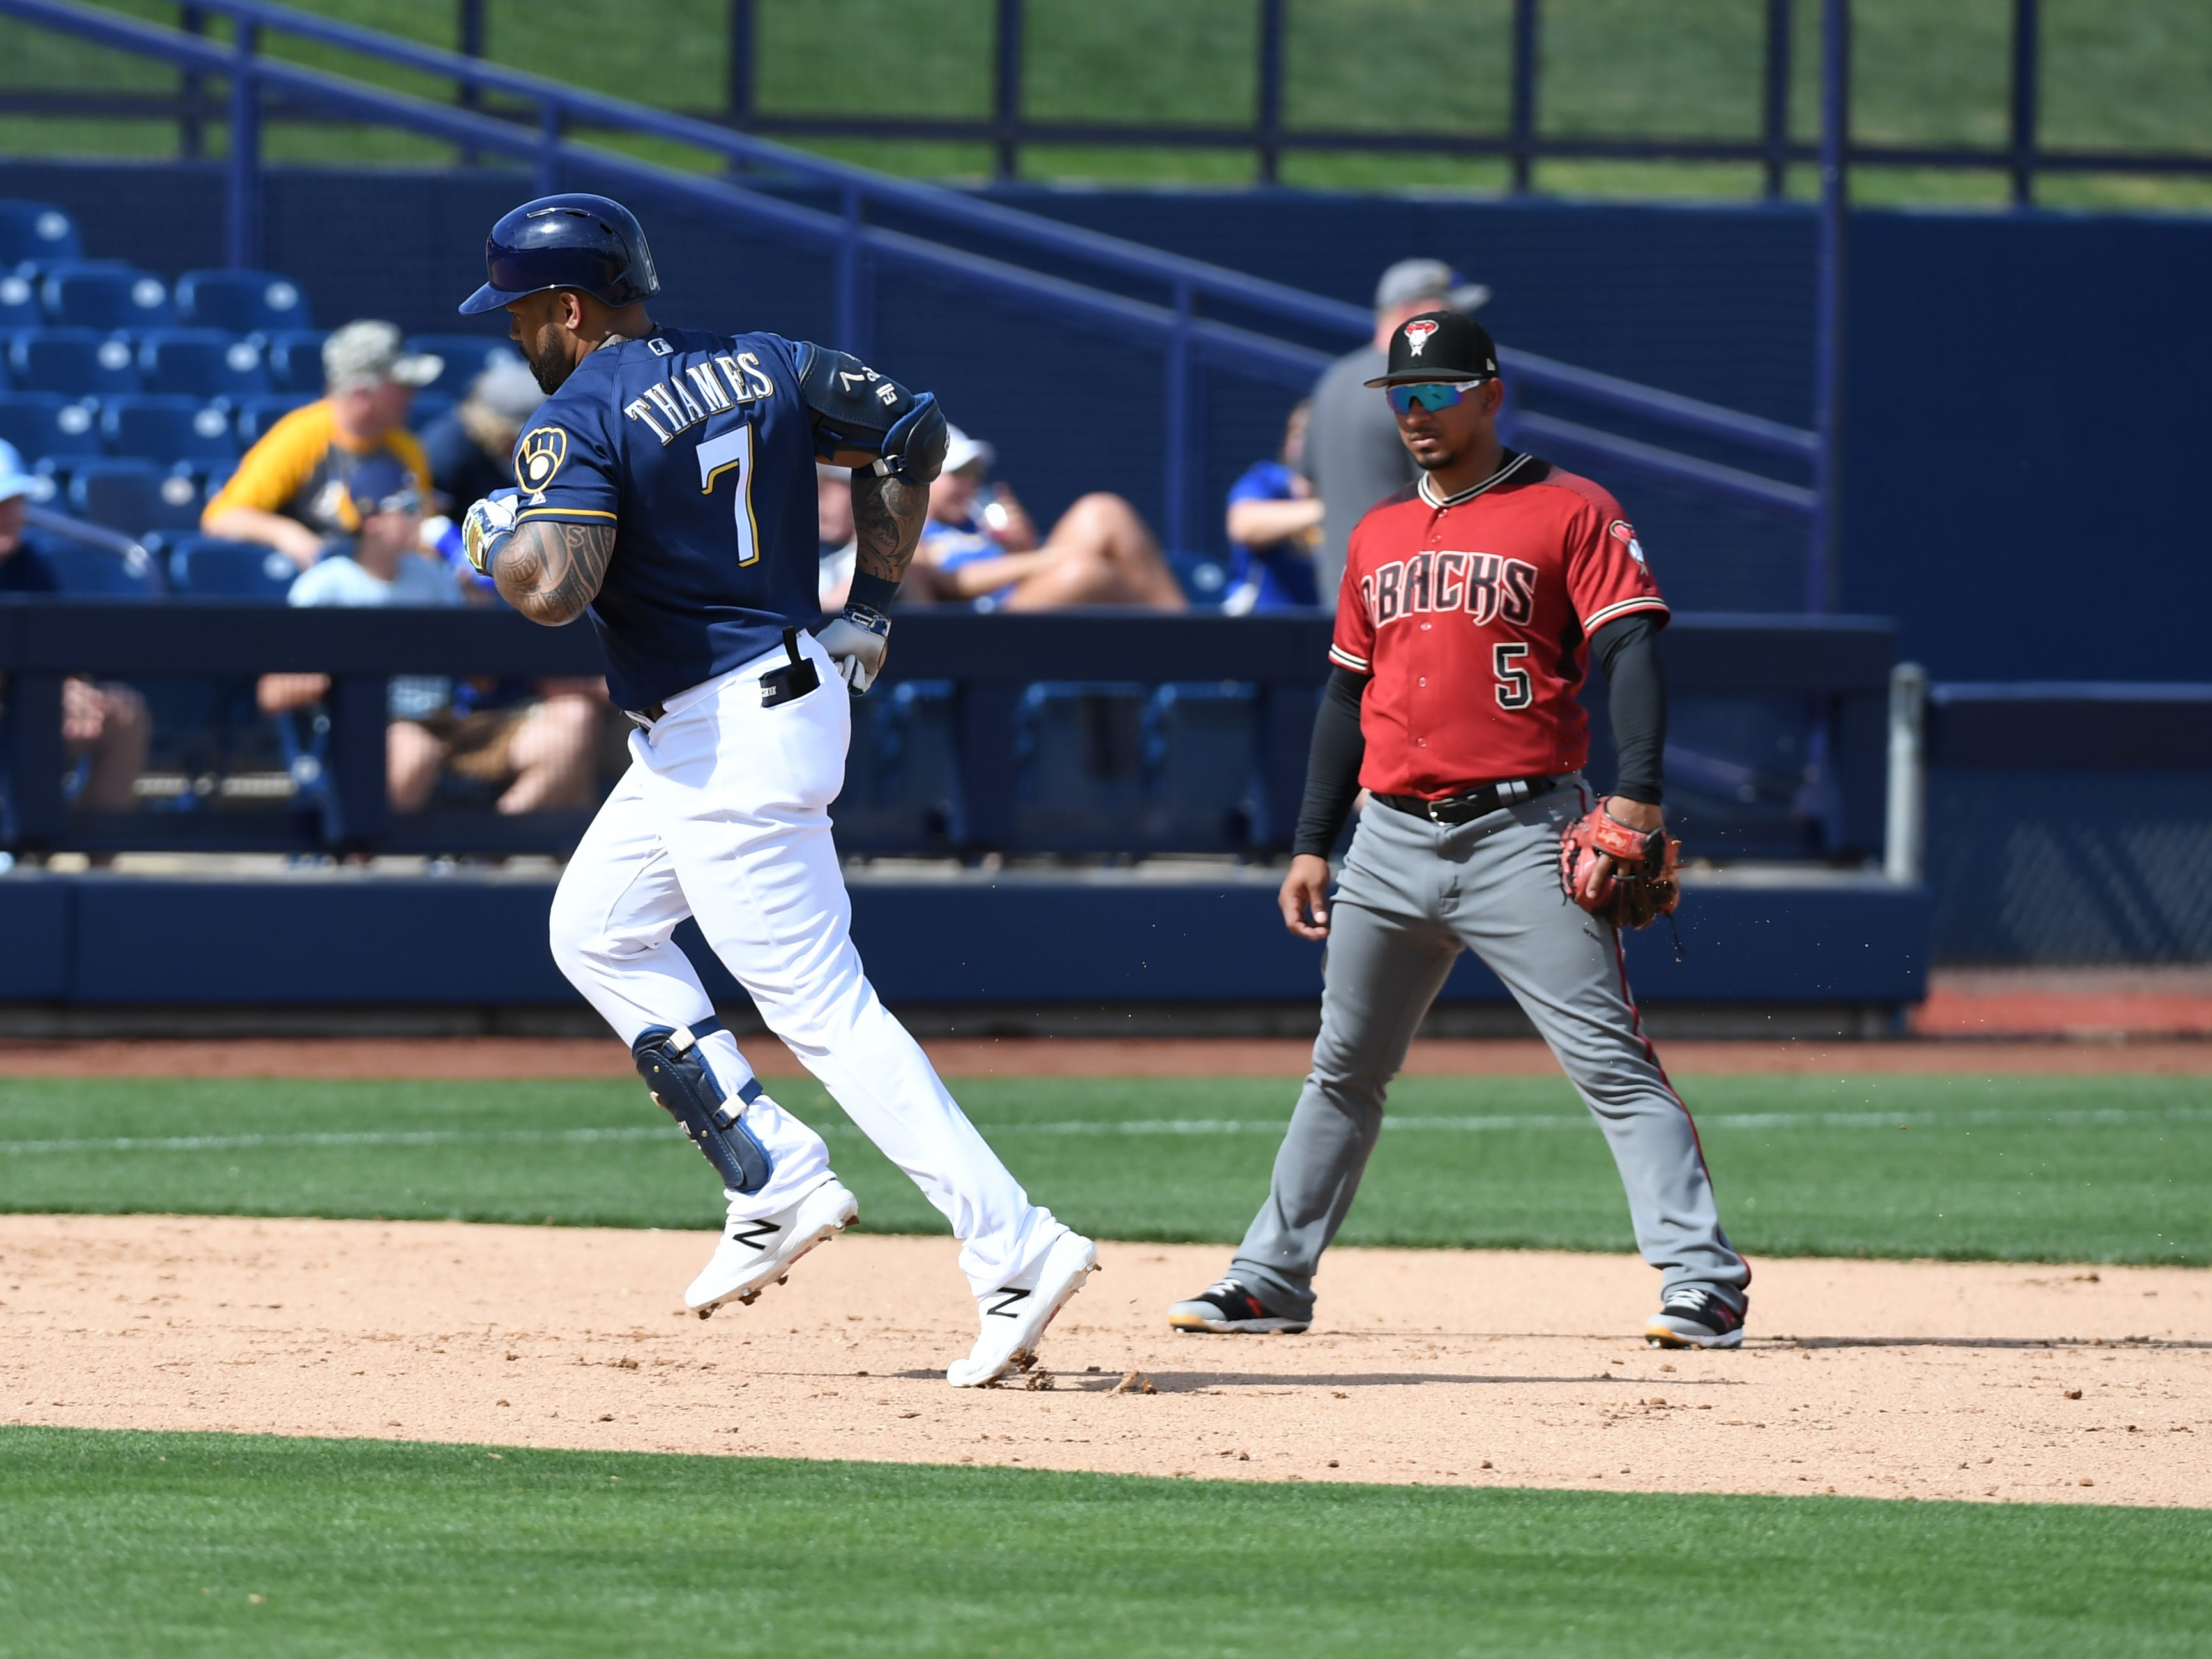 Eric Thames #7 of the Milwaukee Brewers rounds the bases after hitting a home run during the fourth inning of a spring training game as Eduardo Escobar #5 of the Arizona Diamondbacks looks on at Maryvale Baseball Park on March 06, 2019 in Phoenix, Arizona.